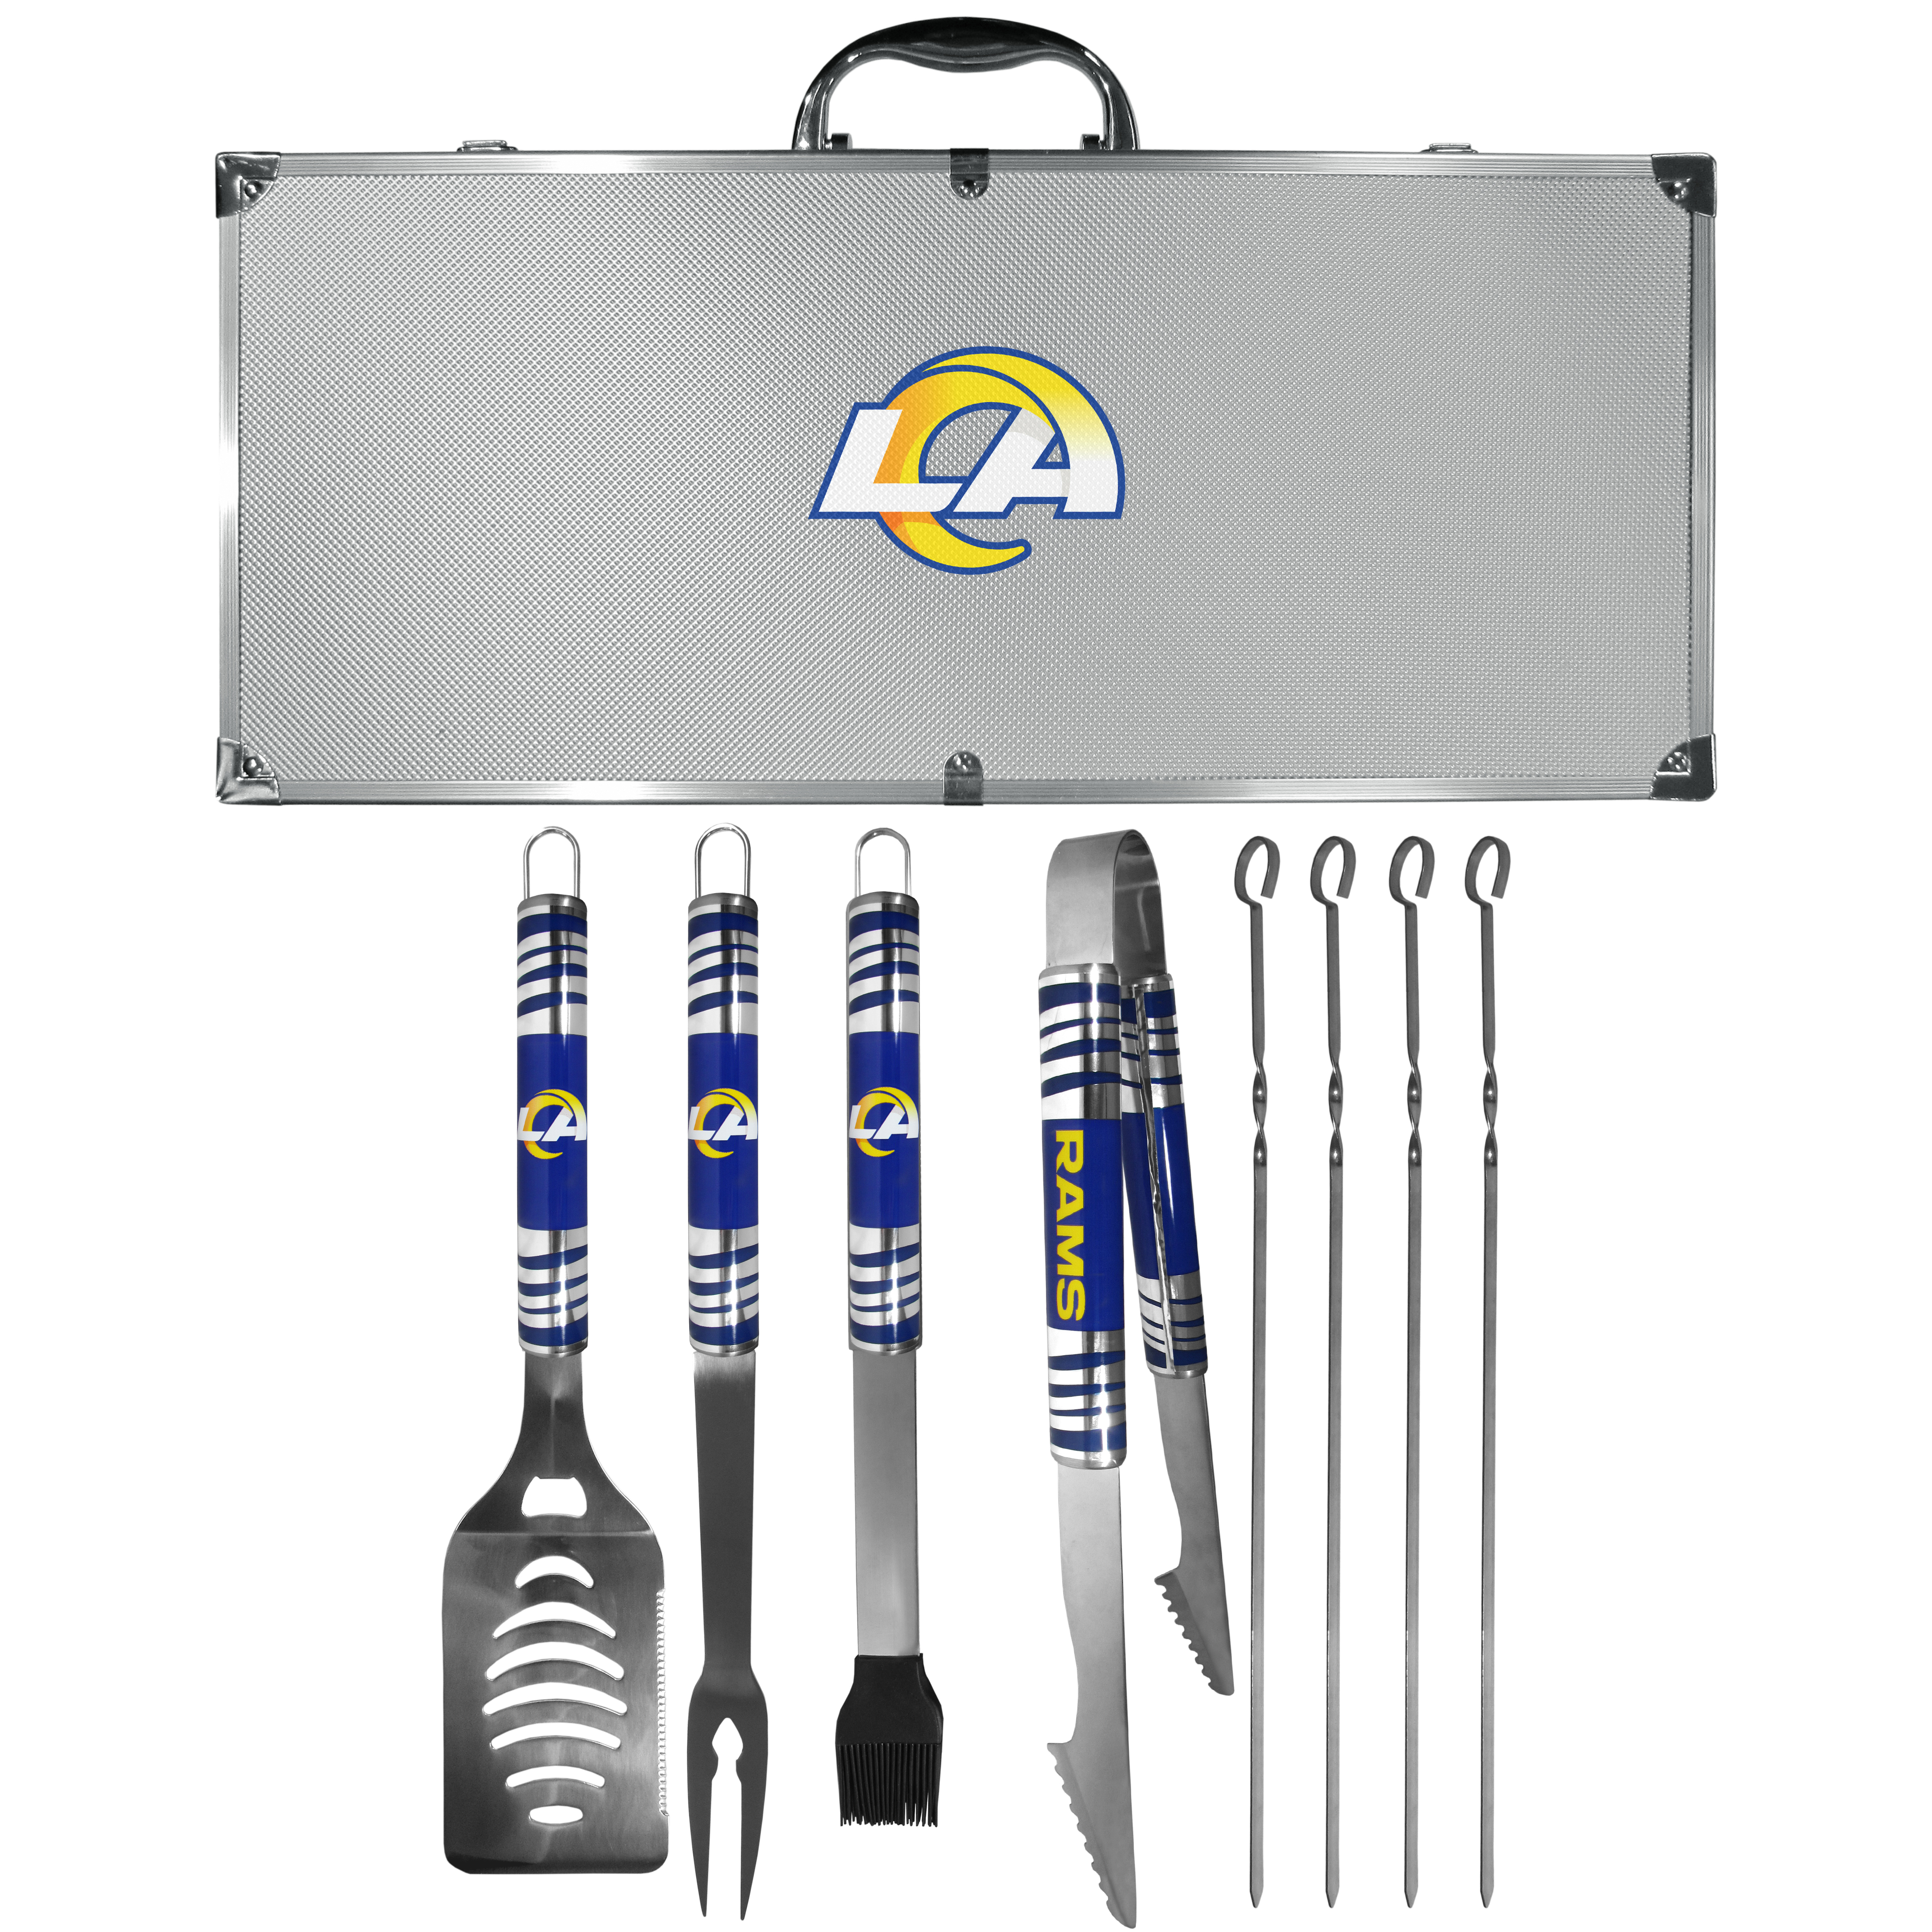 Los Angeles Rams 8 pc Tailgater BBQ Set - This is the ultimate Los Angeles Rams tailgate accessory! The high quality, 420 grade stainless steel tools are durable and well-made enough to make even the pickiest grill master smile. This complete grill accessory kit includes; 4 skewers, spatula with bottle opener and serrated knife edge, basting brush, tongs and a fork. The 18 inch metal carrying case is perfect for great outdoor use making grilling an ease while camping, tailgating or while having a game day party on your patio. The tools are 17 inches long and feature vivid team graphics. The metal case features a large team emblem with exceptional detail. This high-end men's gift is sure to be a hit as a present on Father's Day or Christmas.